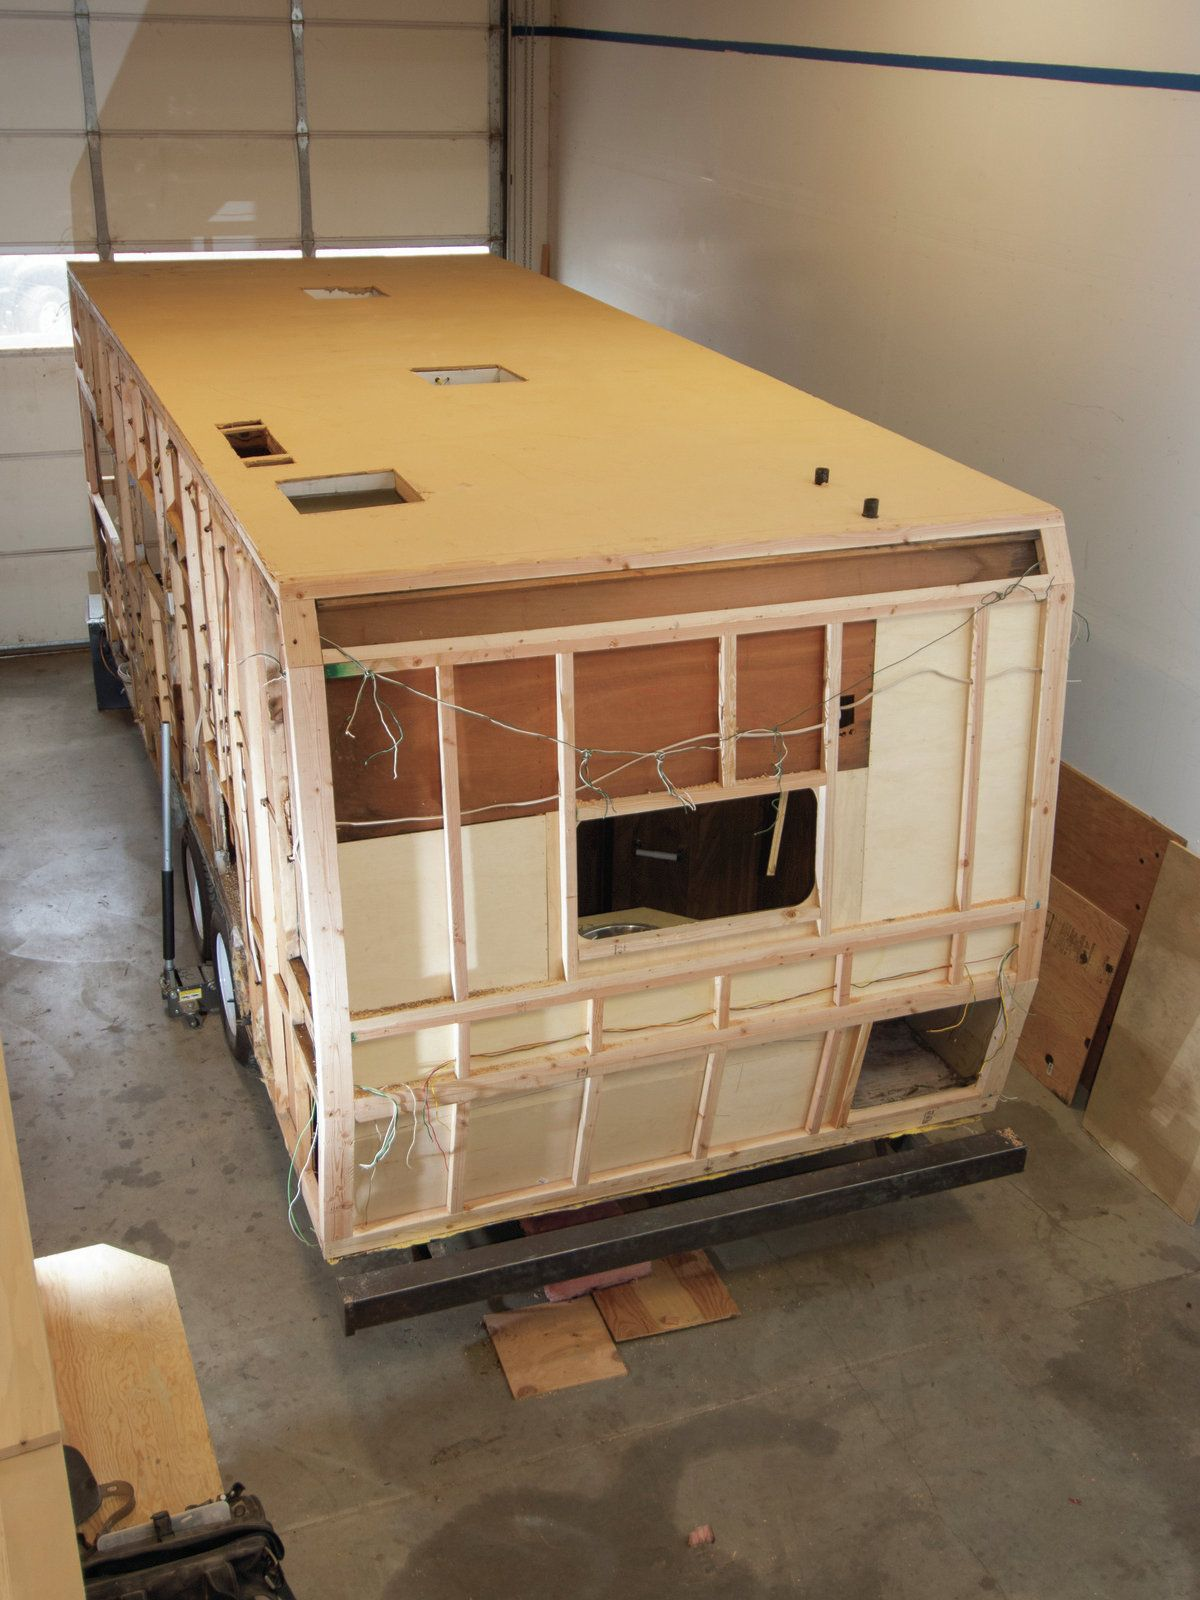 1978 Terry Travel Trailer How to Repair Mobile Home Interior Walls - ImagesEditor | Online Image Editor & 1978 Terry Travel Trailer How to Repair Mobile Home Interior Walls ...